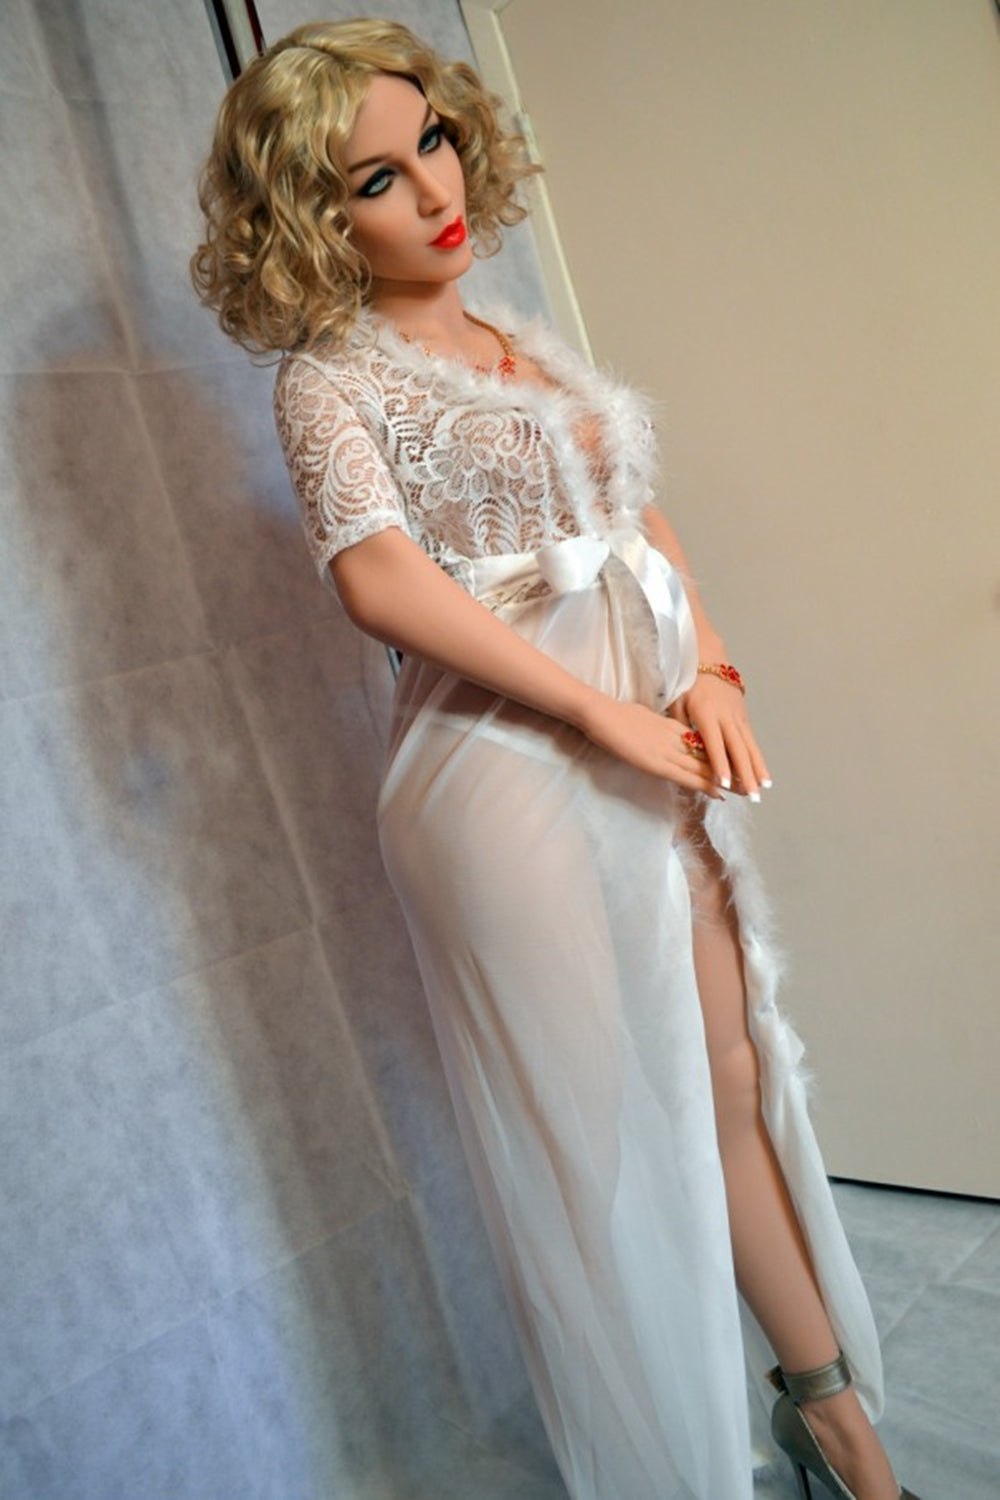 Pam – Pregnant Silicone Doll